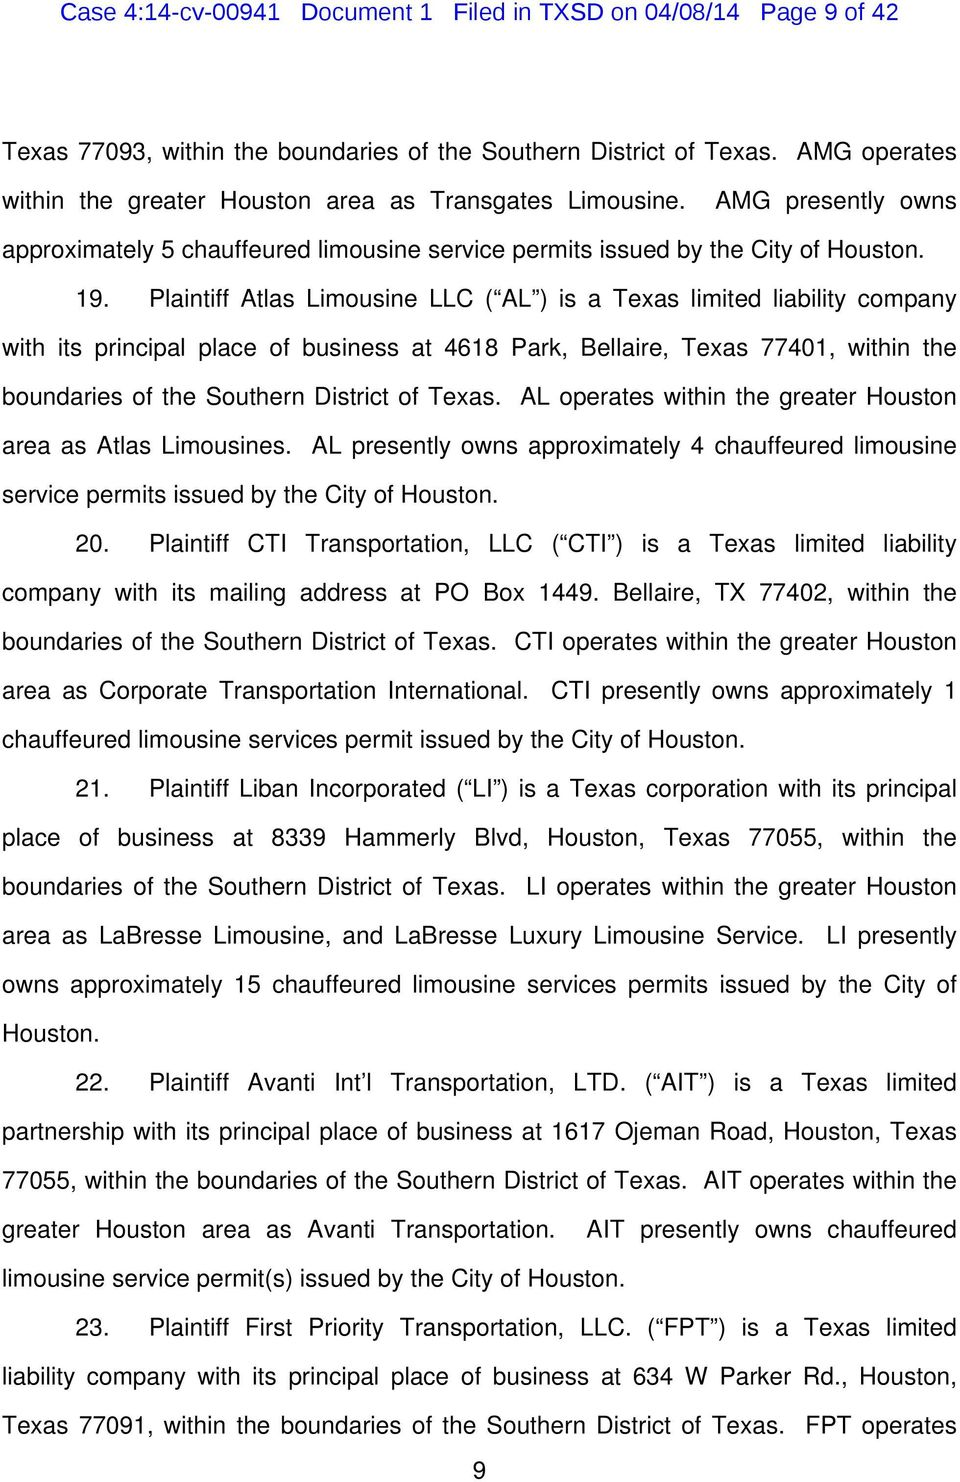 Plaintiff Atlas Limousine LLC ( AL ) is a Texas limited liability company with its principal place of business at 4618 Park, Bellaire, Texas 77401, within the boundaries of the Southern District of